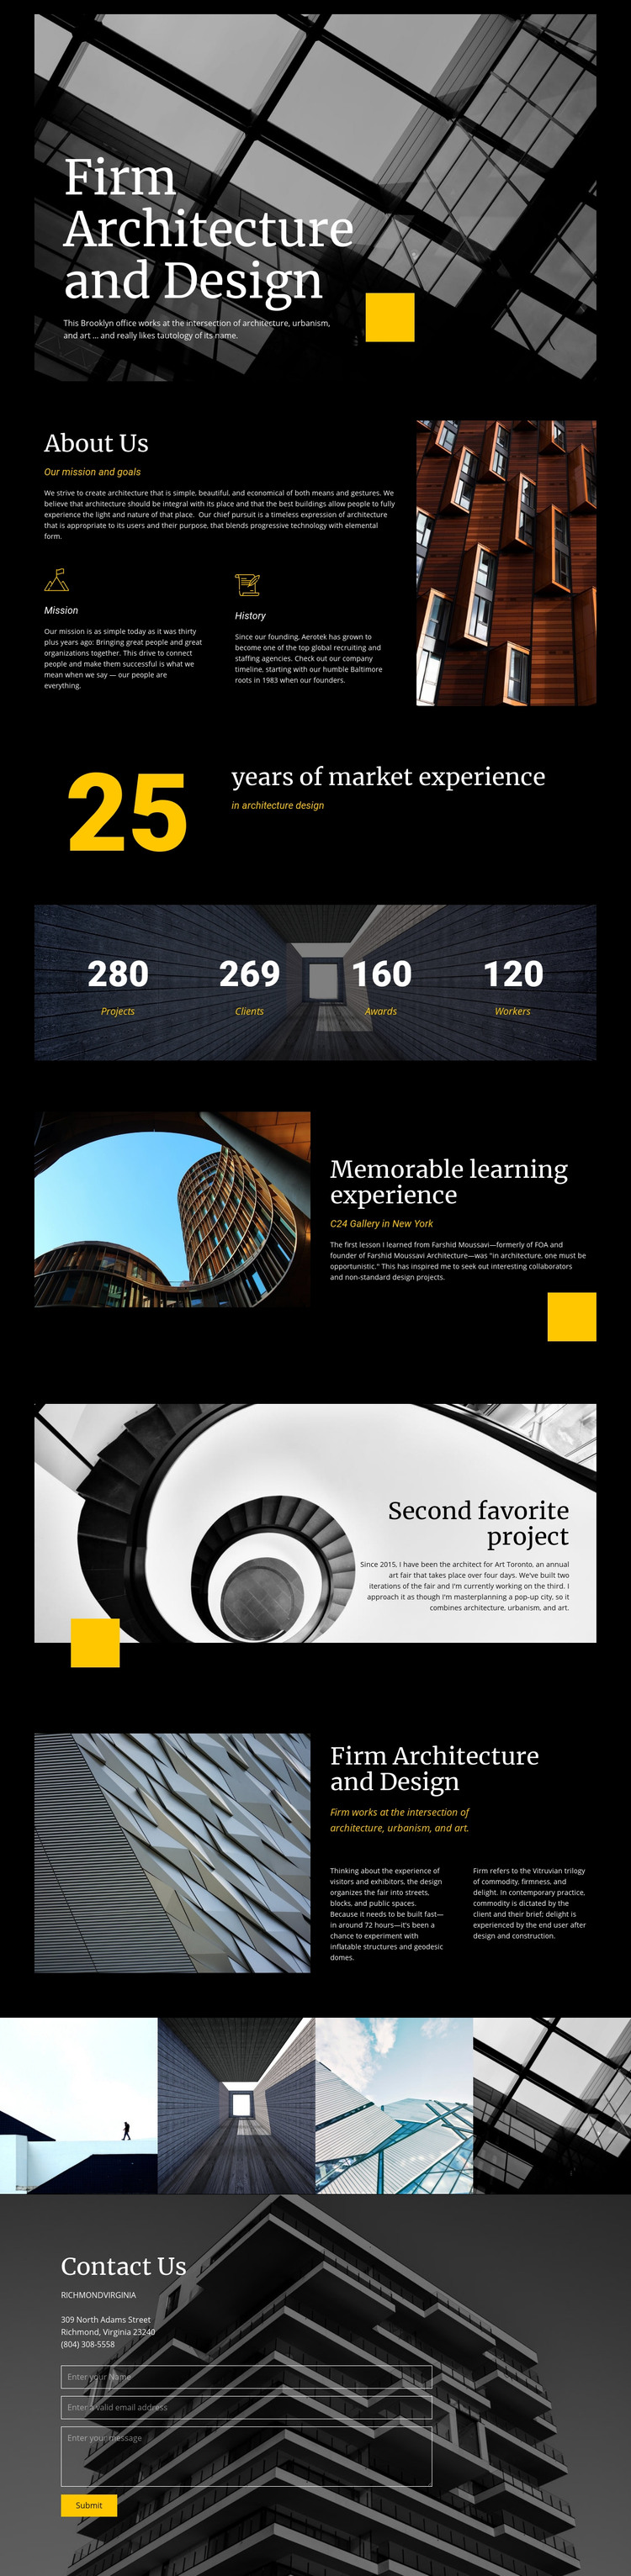 Firm architecture and Design Homepage Design